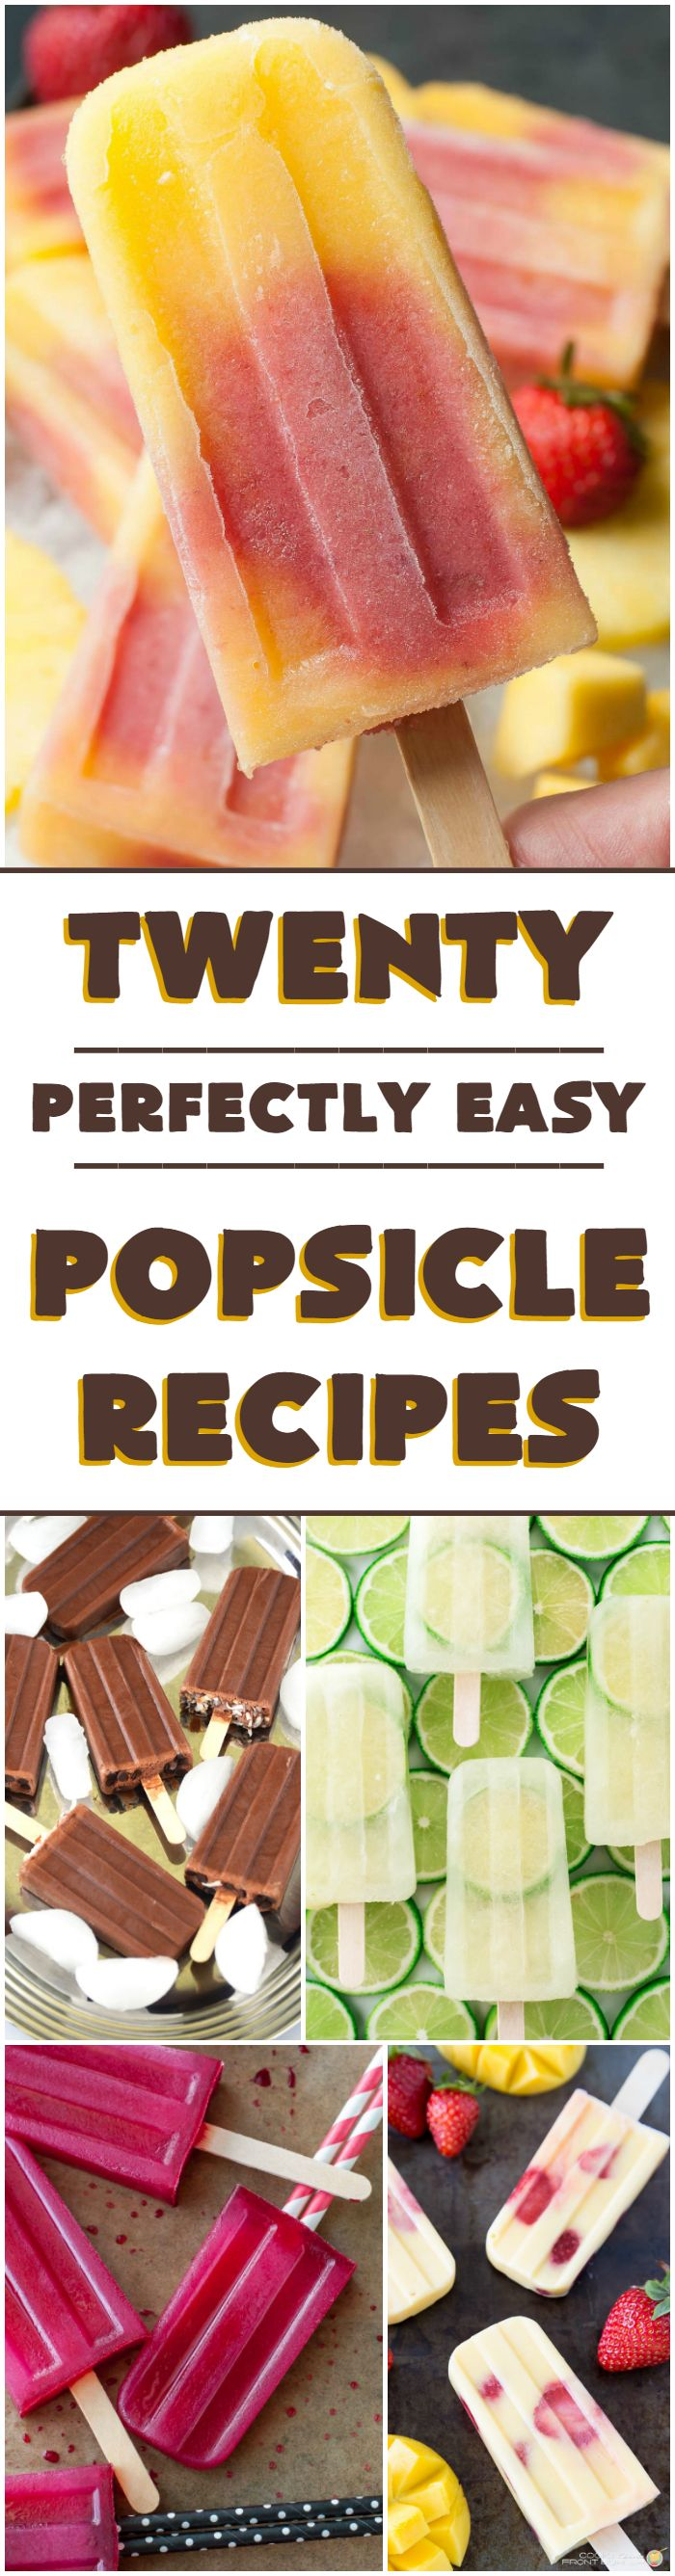 20 Perfectly Easy Popsicle Recipes